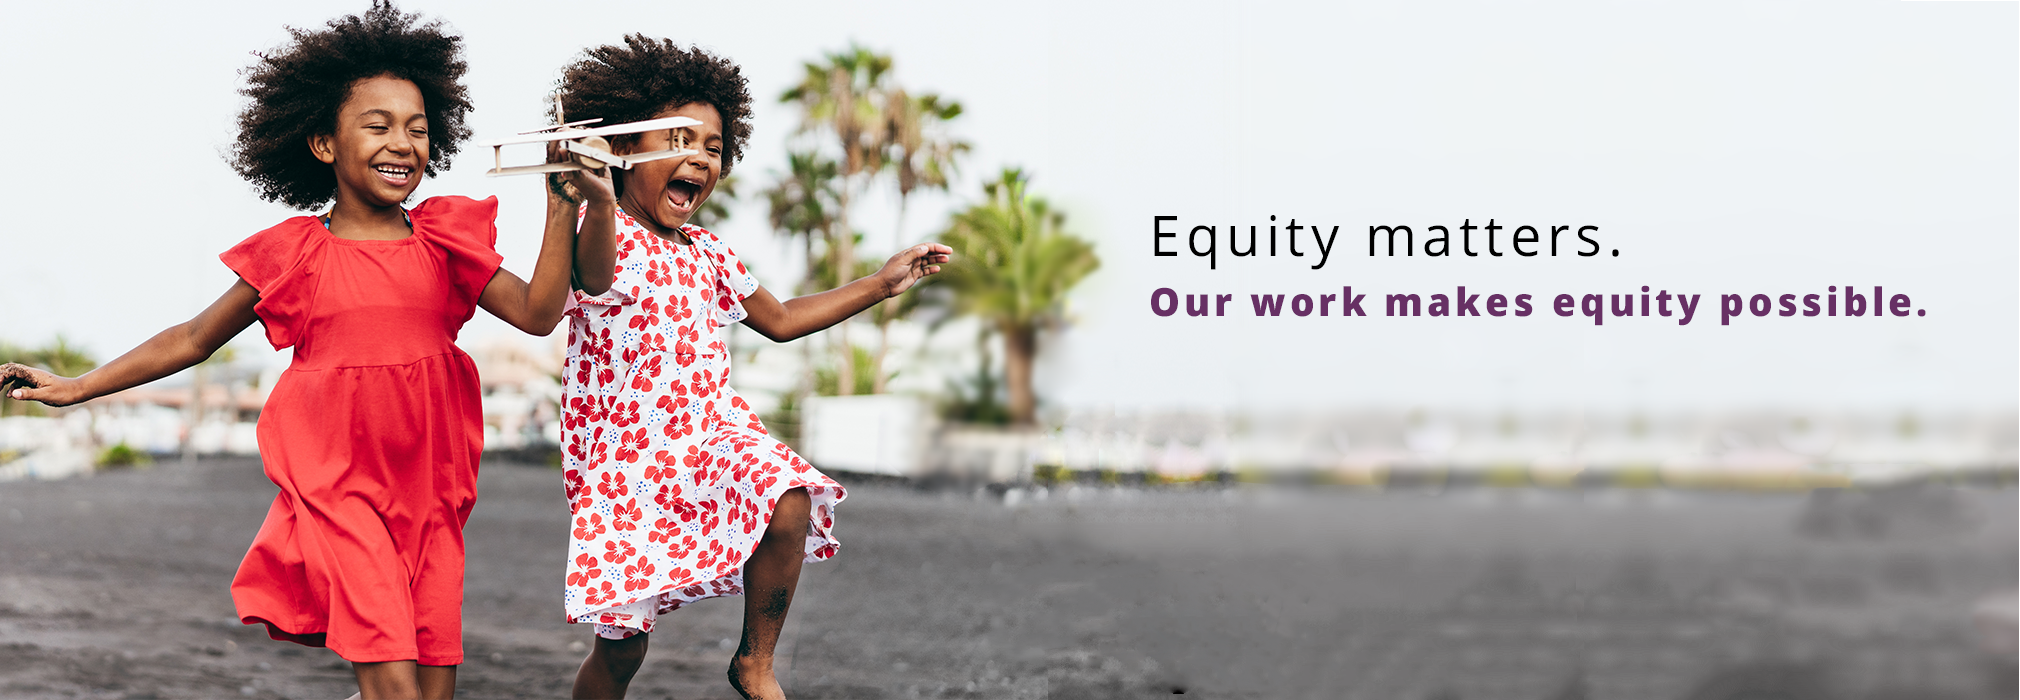 Equity matters.  Our work makes equity possible.